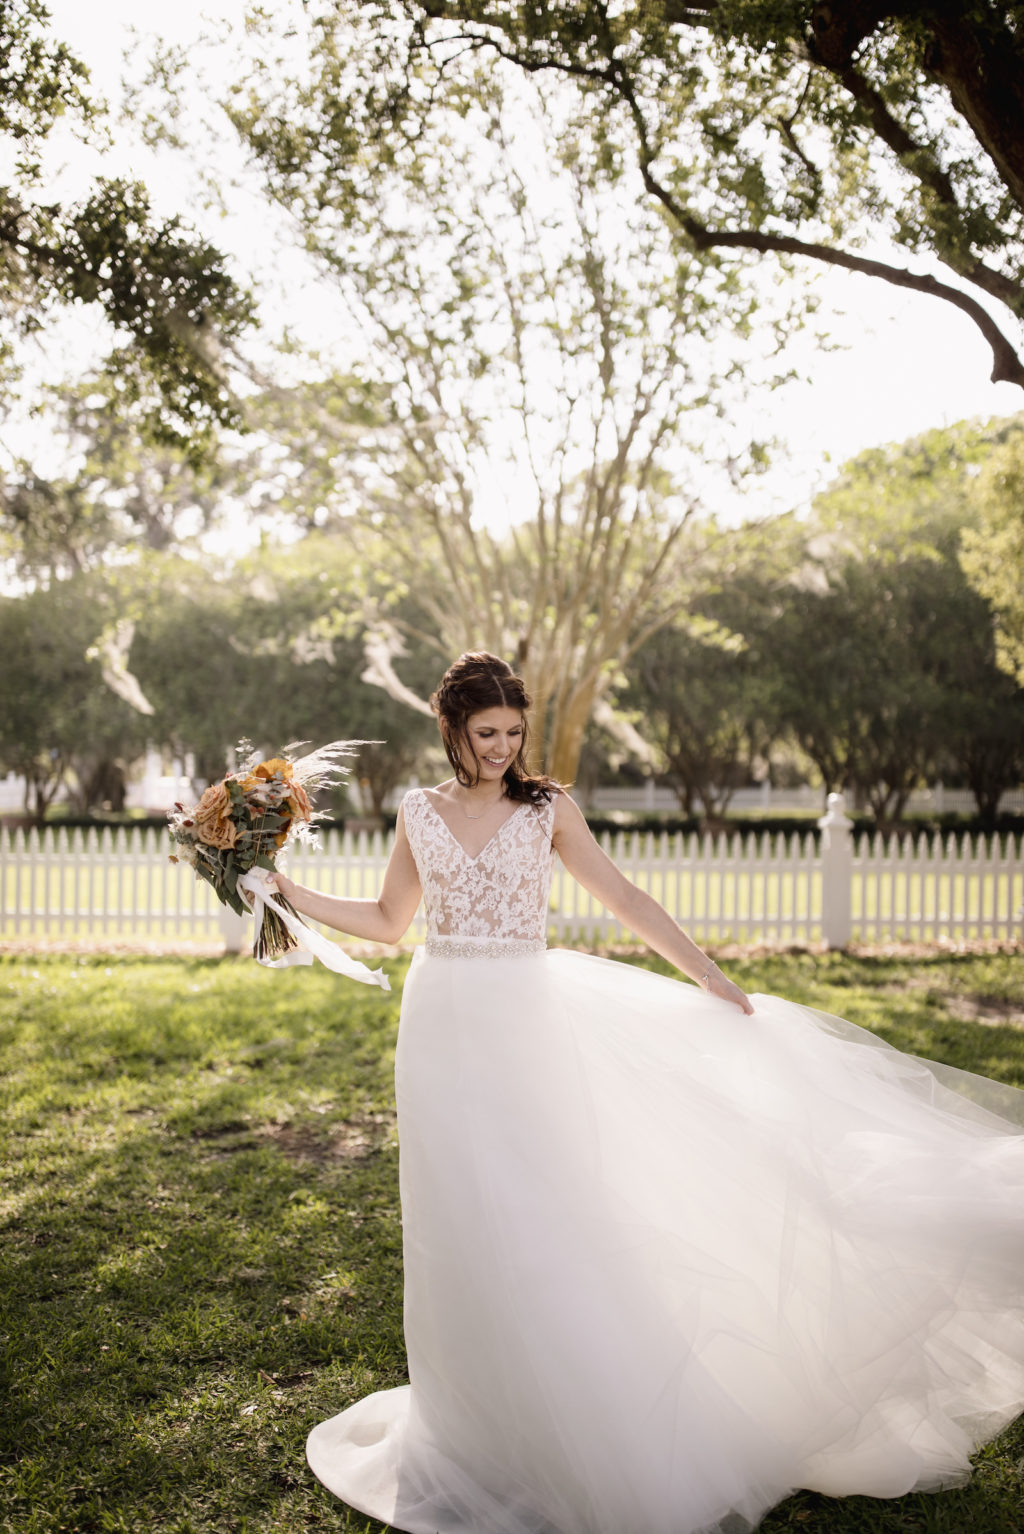 Lace Detail Ballgown Wedding Dress   Florida Bride in her Dress with Bohemian Flower Bouquet   Paloma Blanca, Overskirt: Hayley Paige   Sarasota Wedding Photographer Alisa Sue Photography